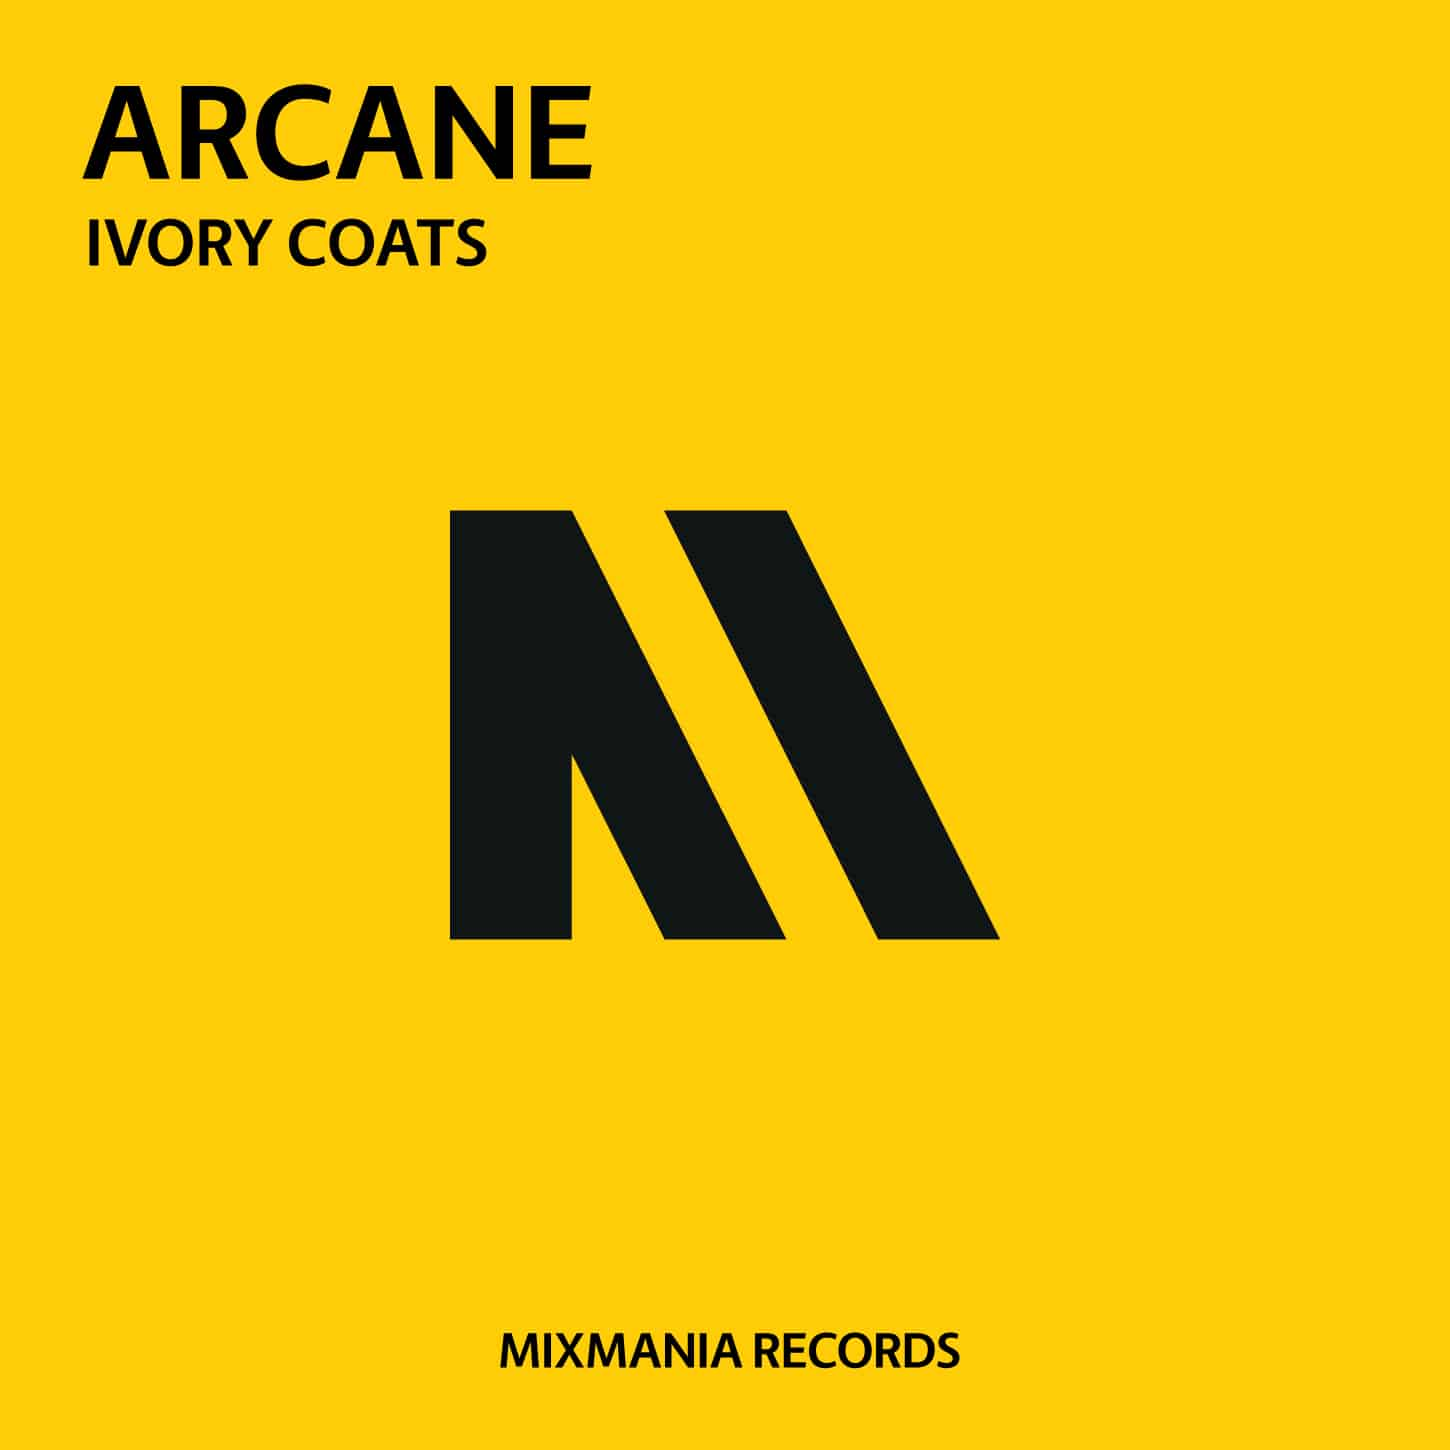 Arcane (Original Mix) cover image